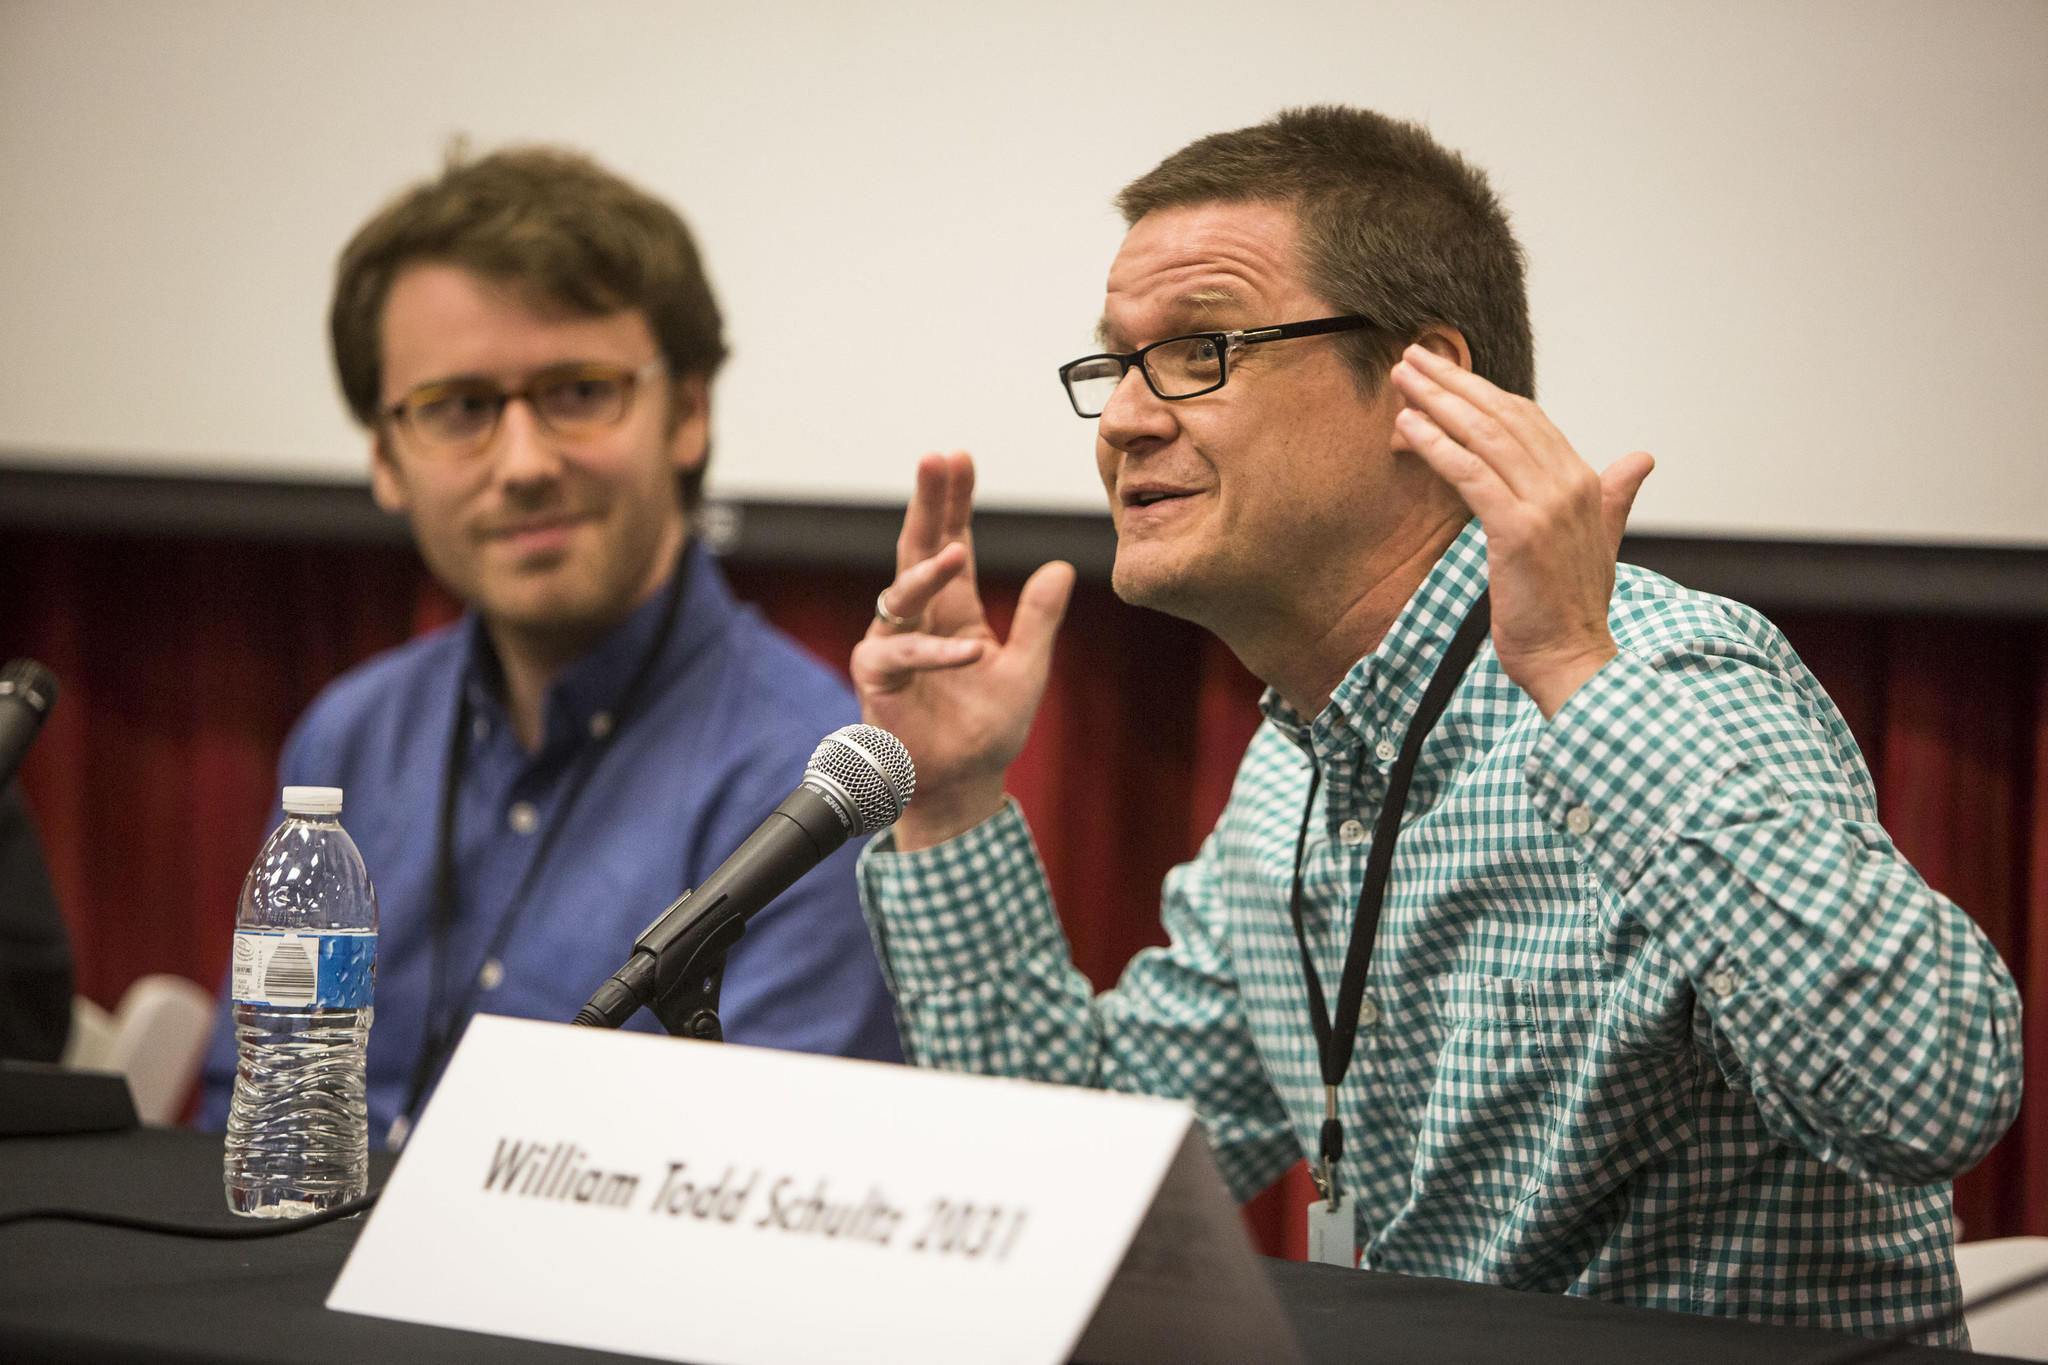 """William Todd Schultz, right, and Ben Tarnoff at the """"Art as Influencer"""" panel at the Los Angeles Times Festival of Books"""